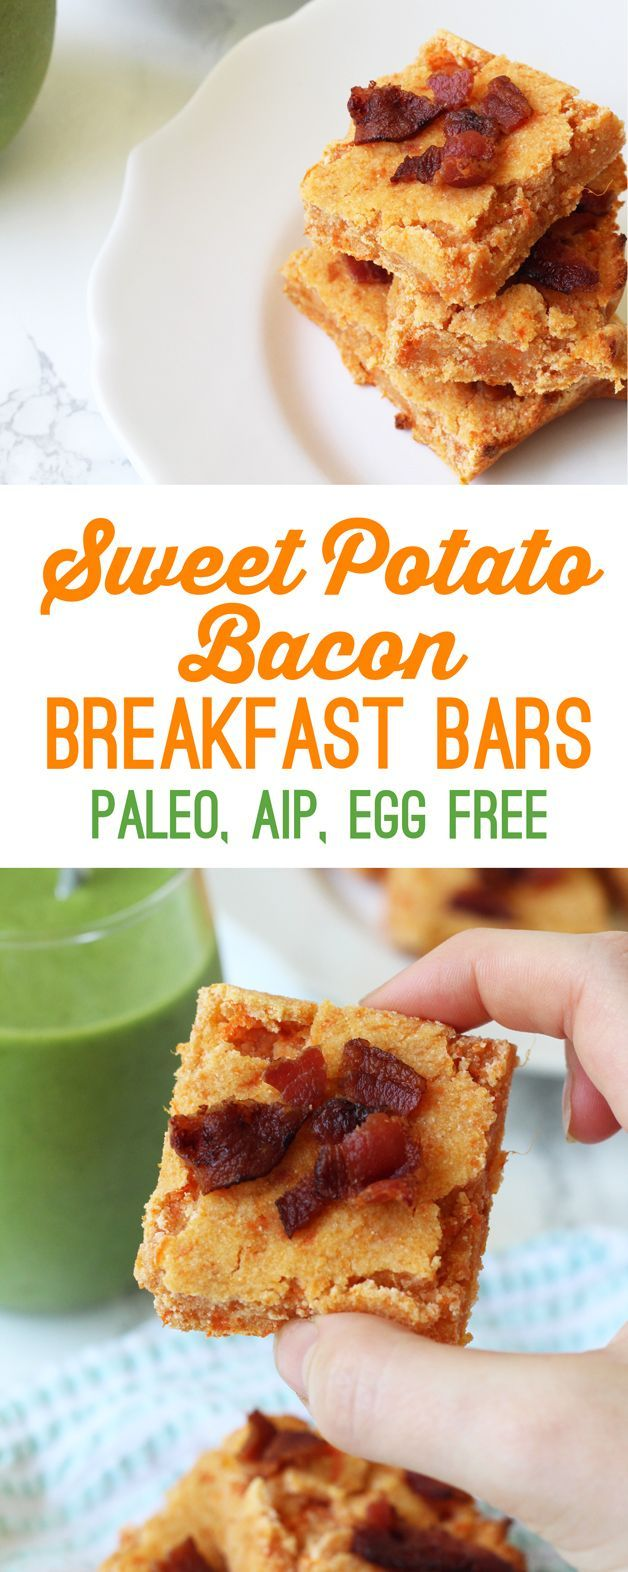 This post contains affiliate links. Learn what that means here. Egg freeandgrain free breakfasts are hard! Even before I was an avid egg lover (before I realized my egg white intolerance) I was a cereal and bagel junkie. Oatmeal, cold cereal, or a crispy bagel smothered in cream cheese was where my heart was at …